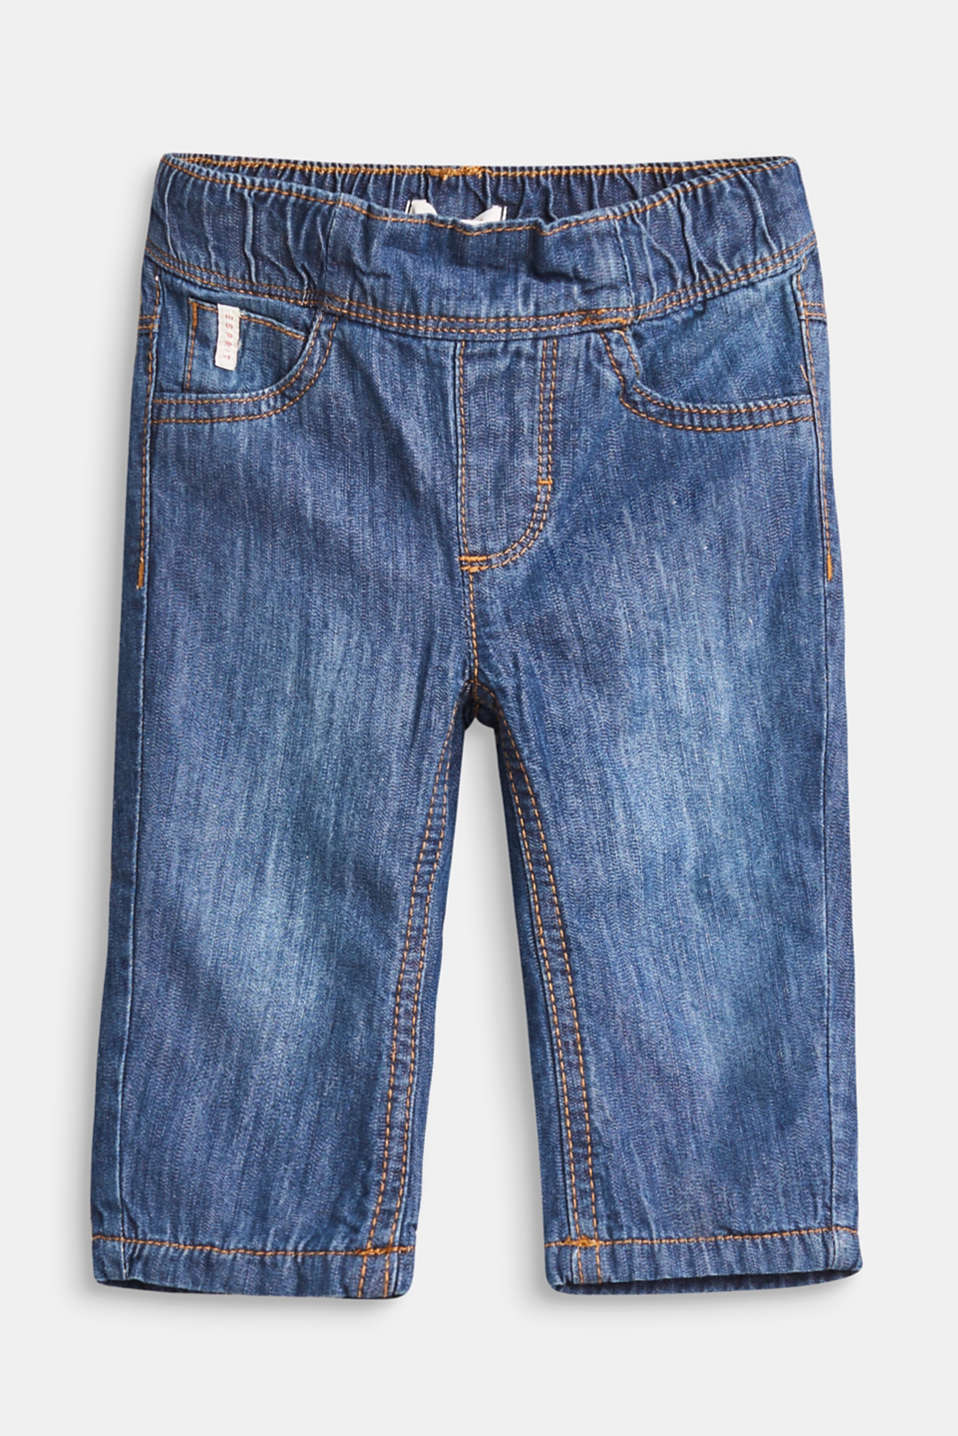 Esprit - Soft cotton jeans with jersey lining